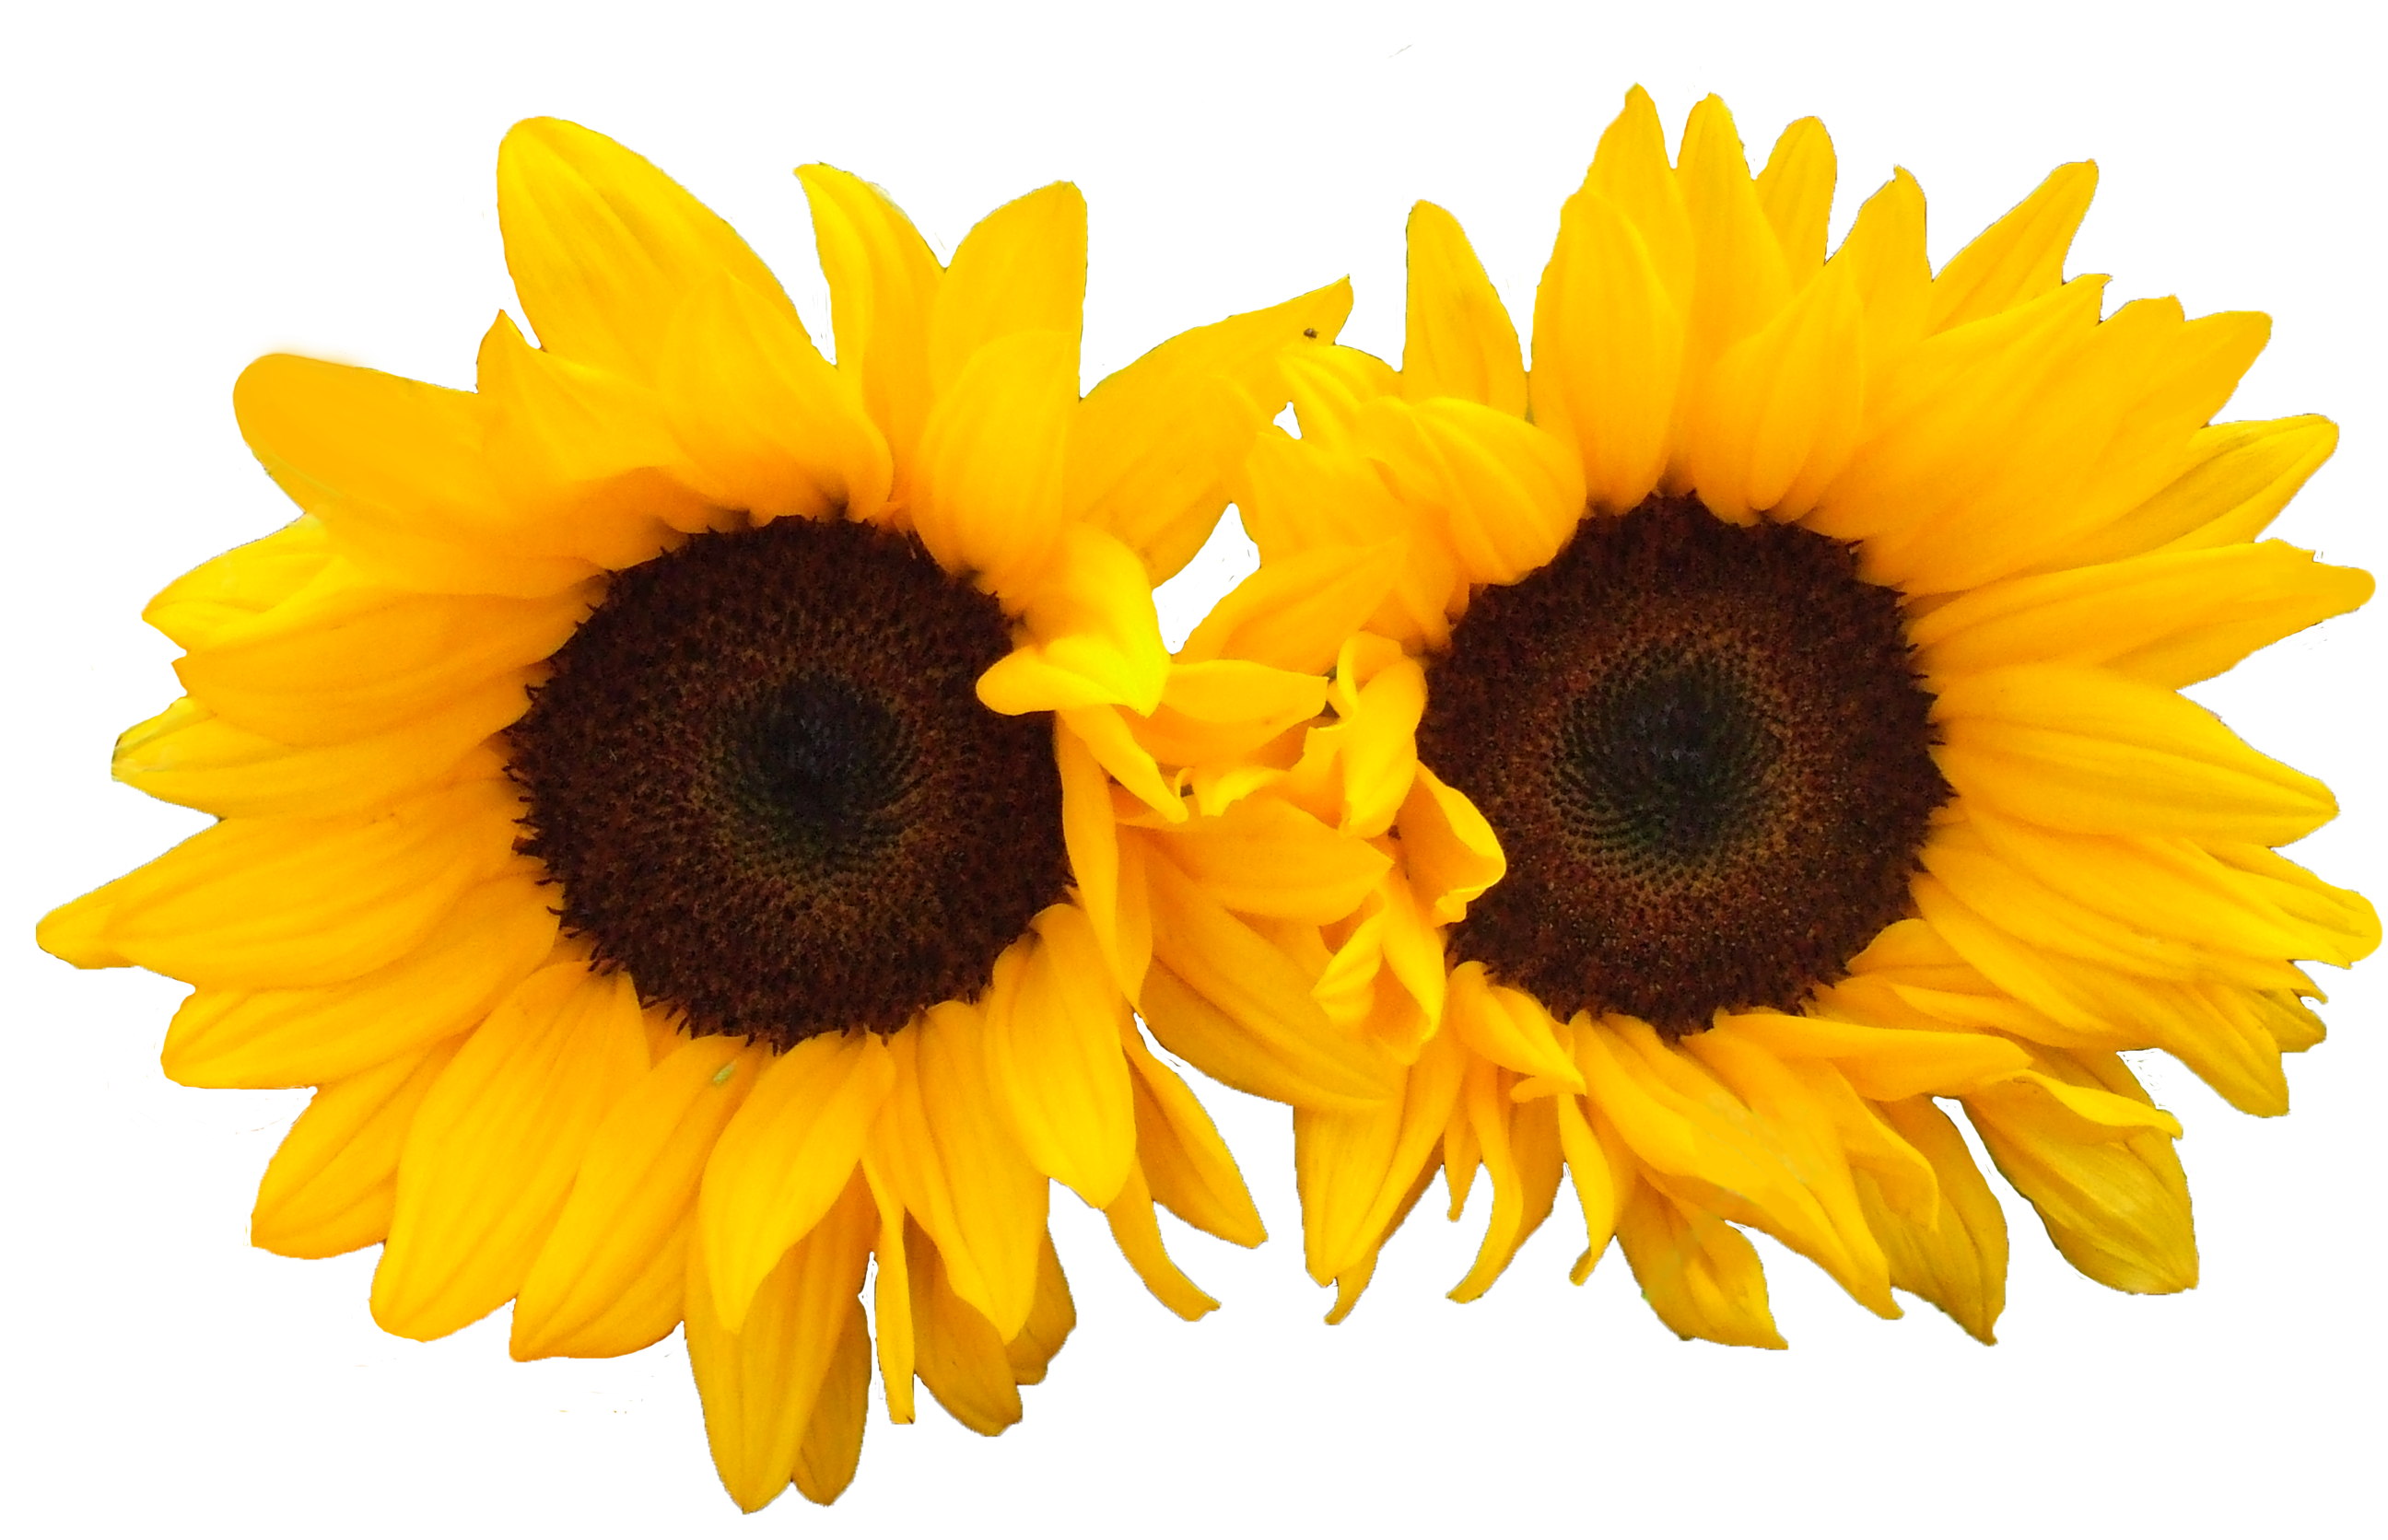 Sun Flowers PNG Image